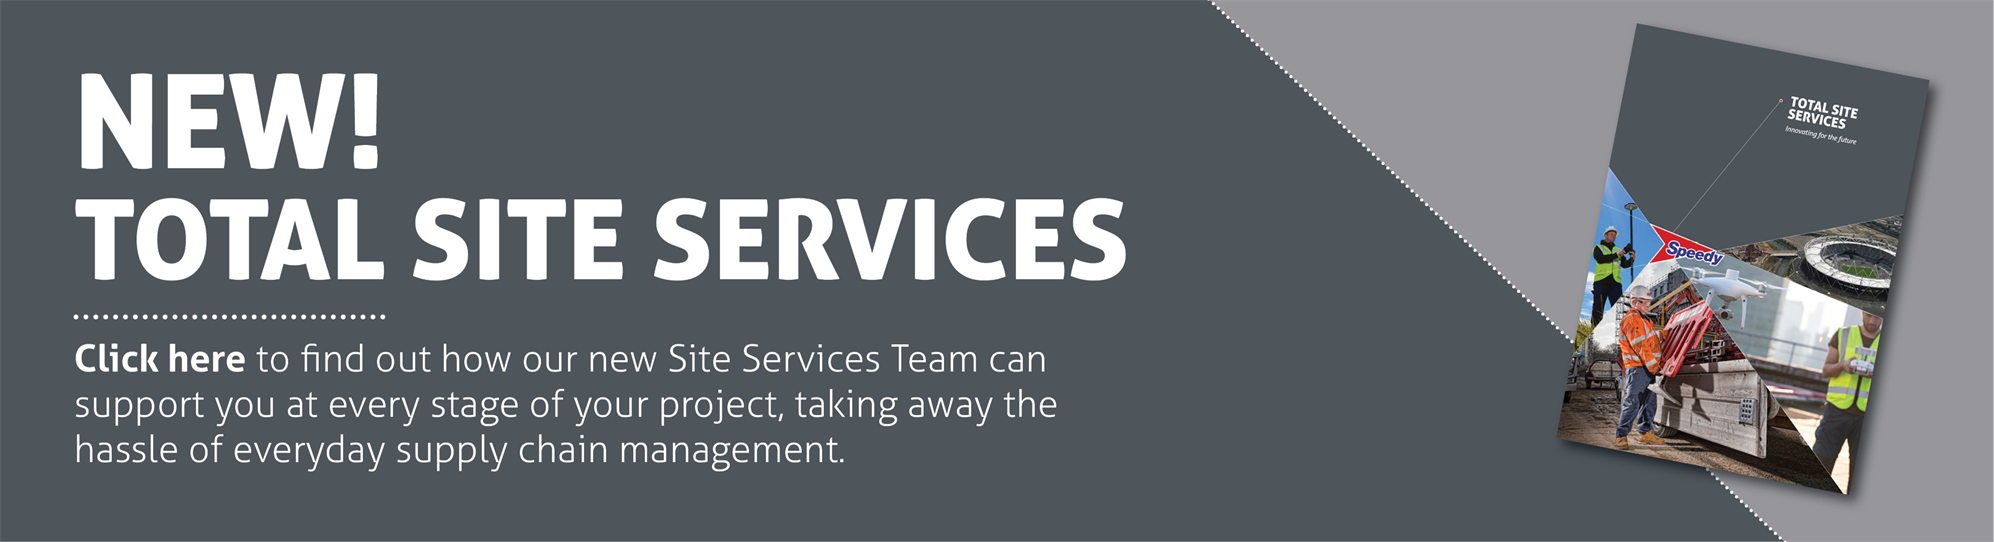 Site Services Web Banner.png